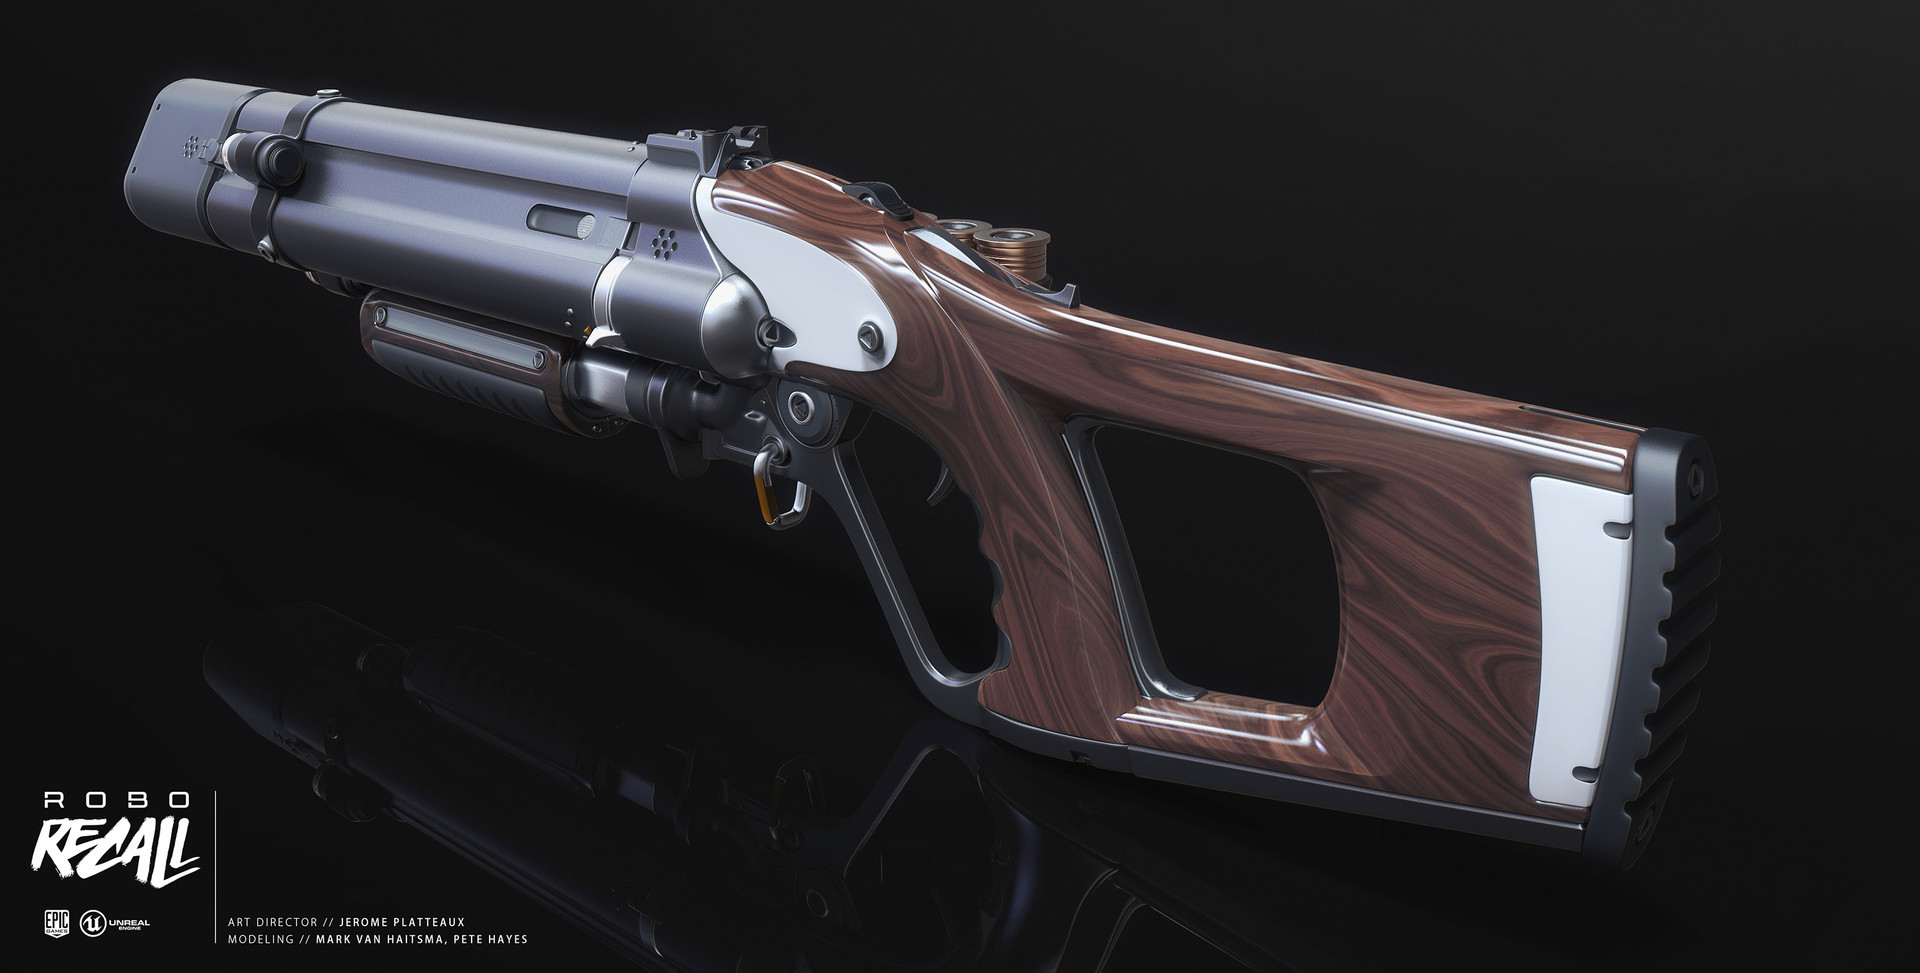 Mark van haitsma triple barrel shotgun back perspective attachments